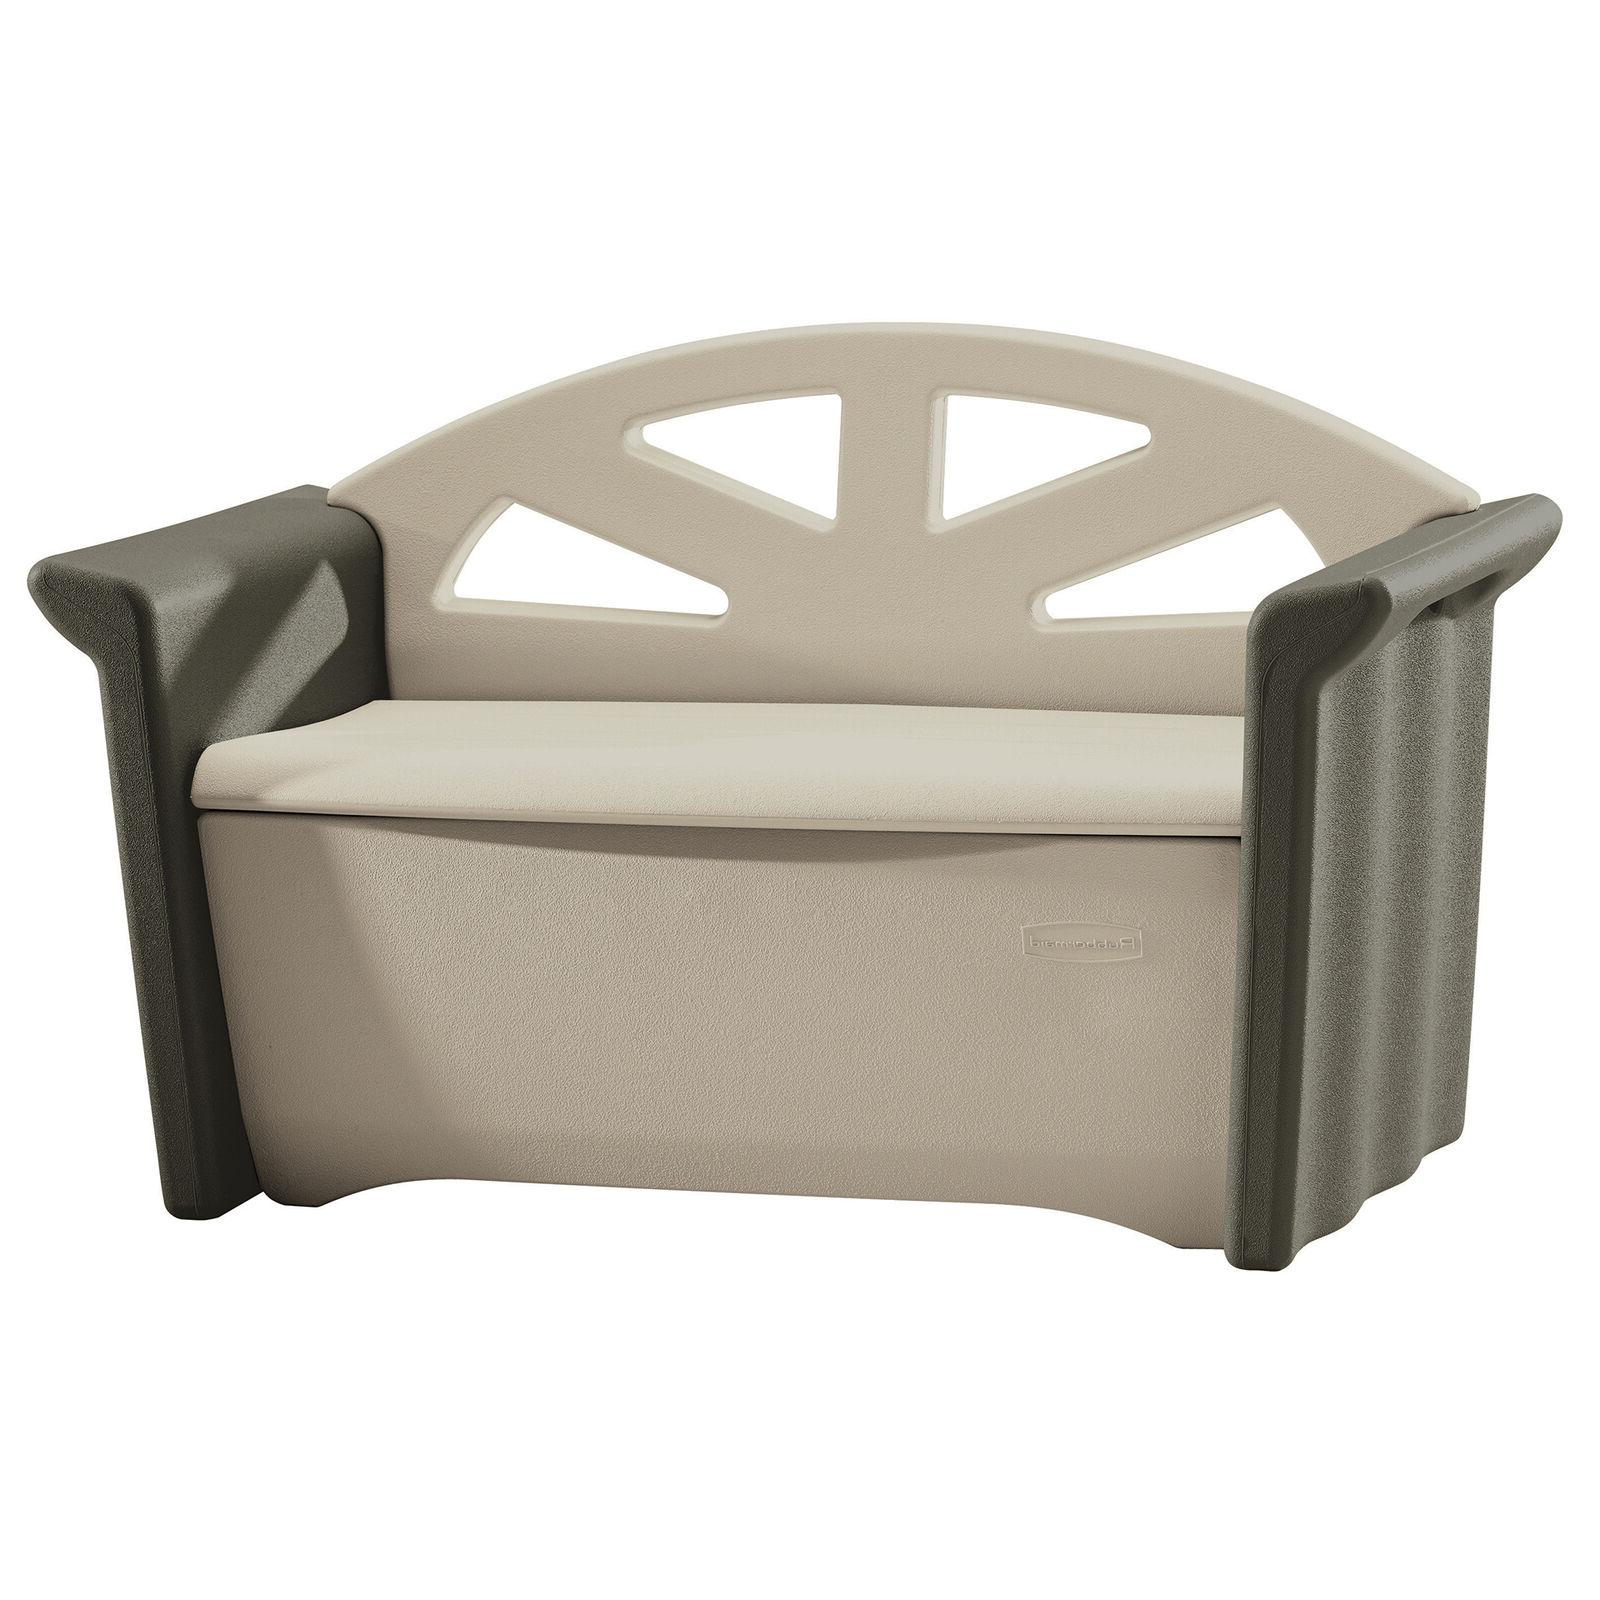 patio storage bench olive and sandstone outdoor